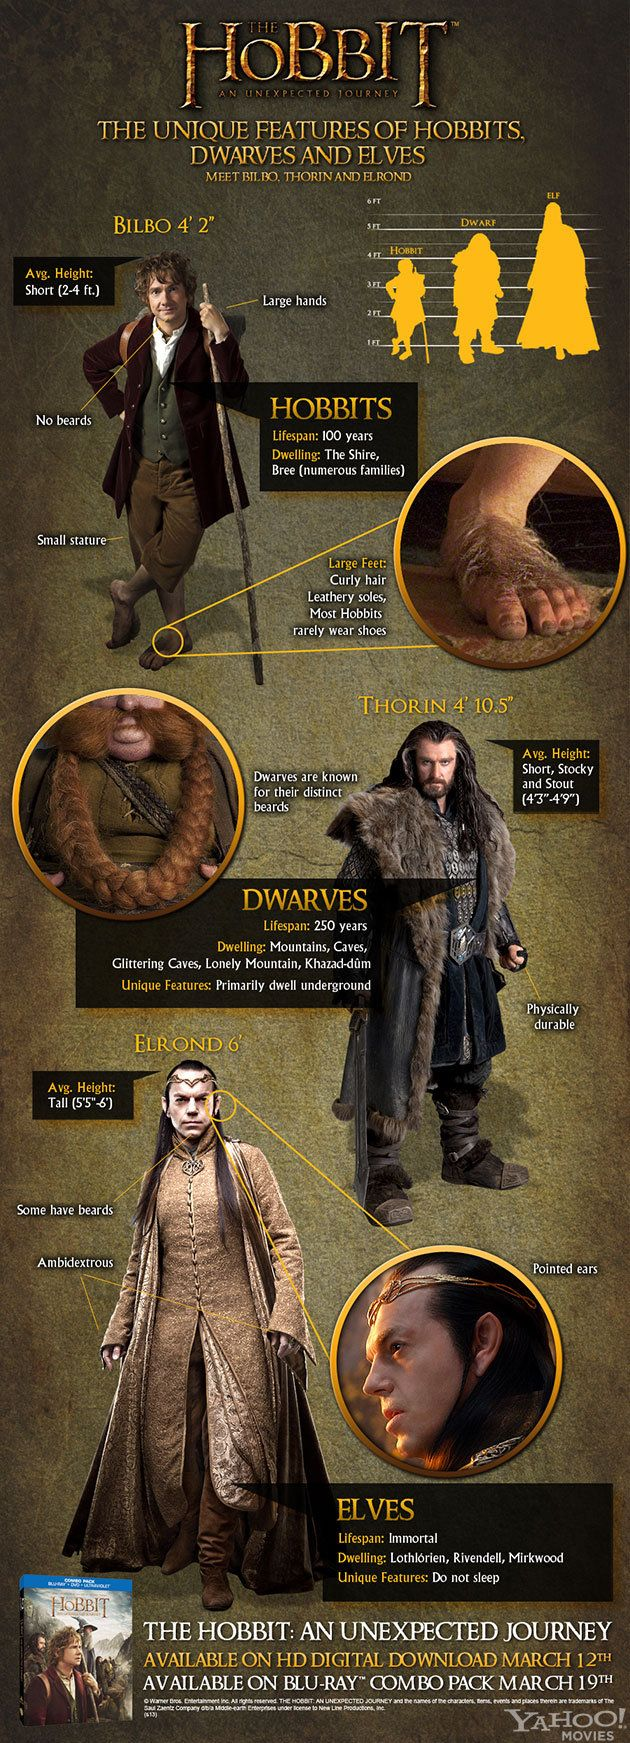 The Hobbit: An Unexpected Journey Infographic (Warner Bros. Pictures) - Click to view full size http://mushroomsfree.com